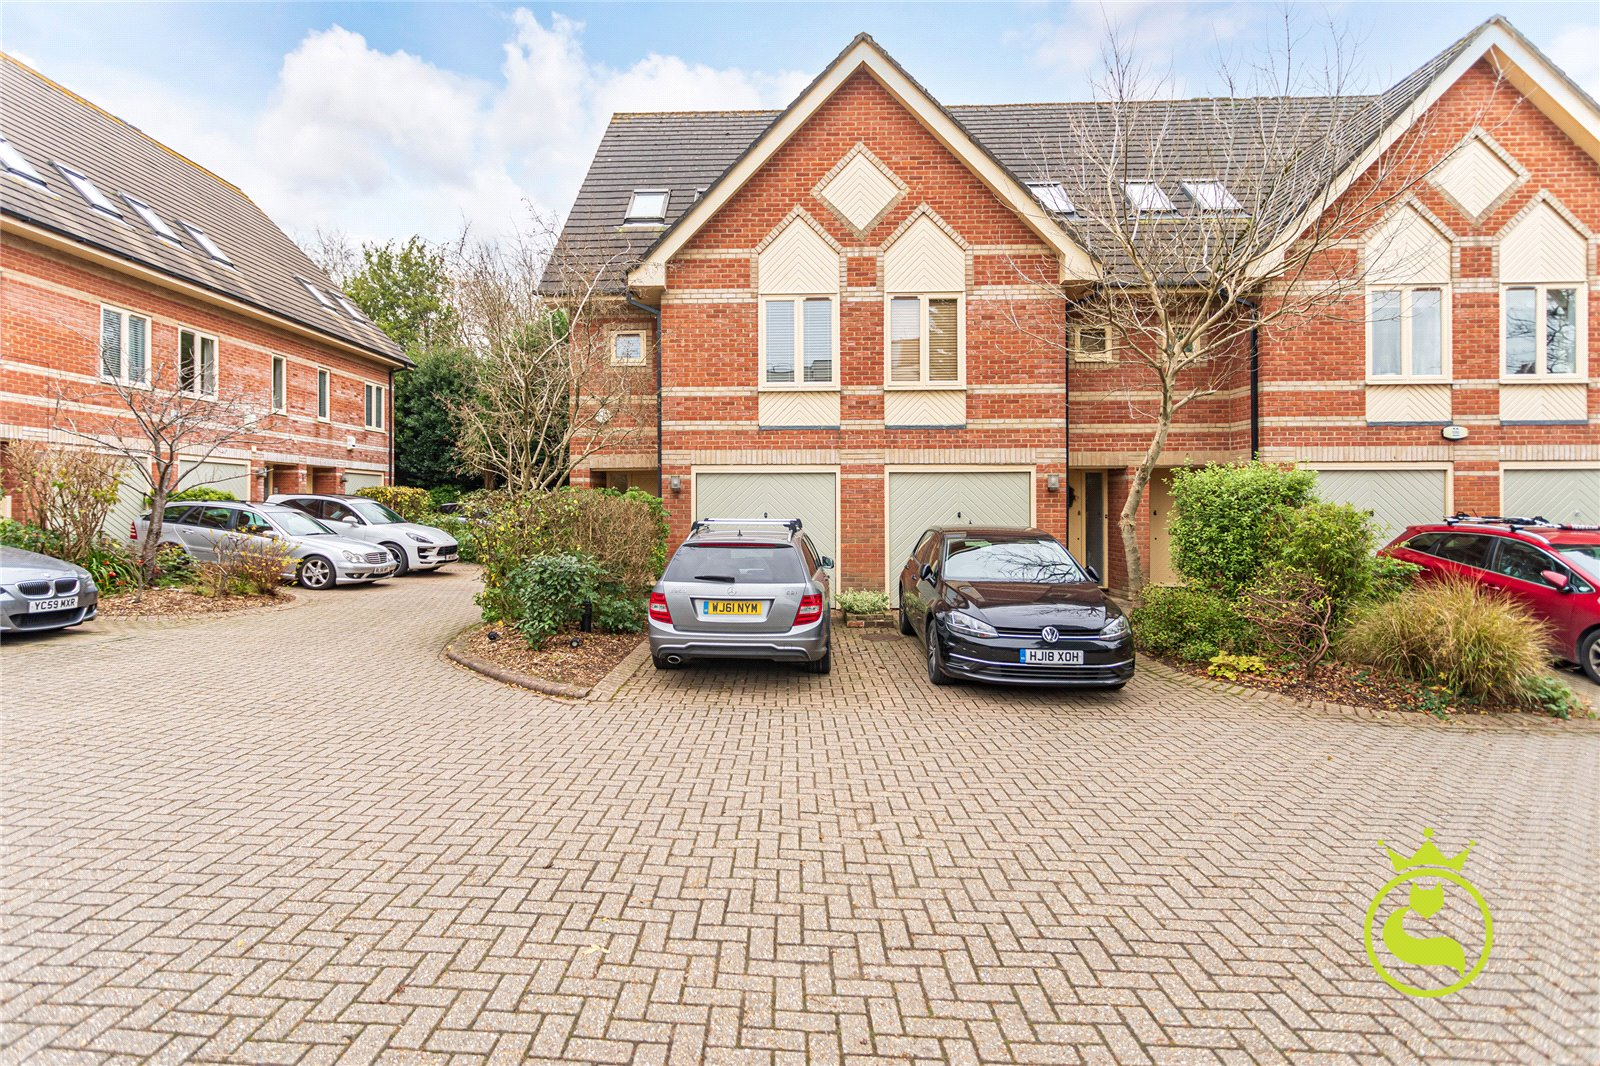 3 bed house for sale in Church Road, Lower Parkstone, BH14